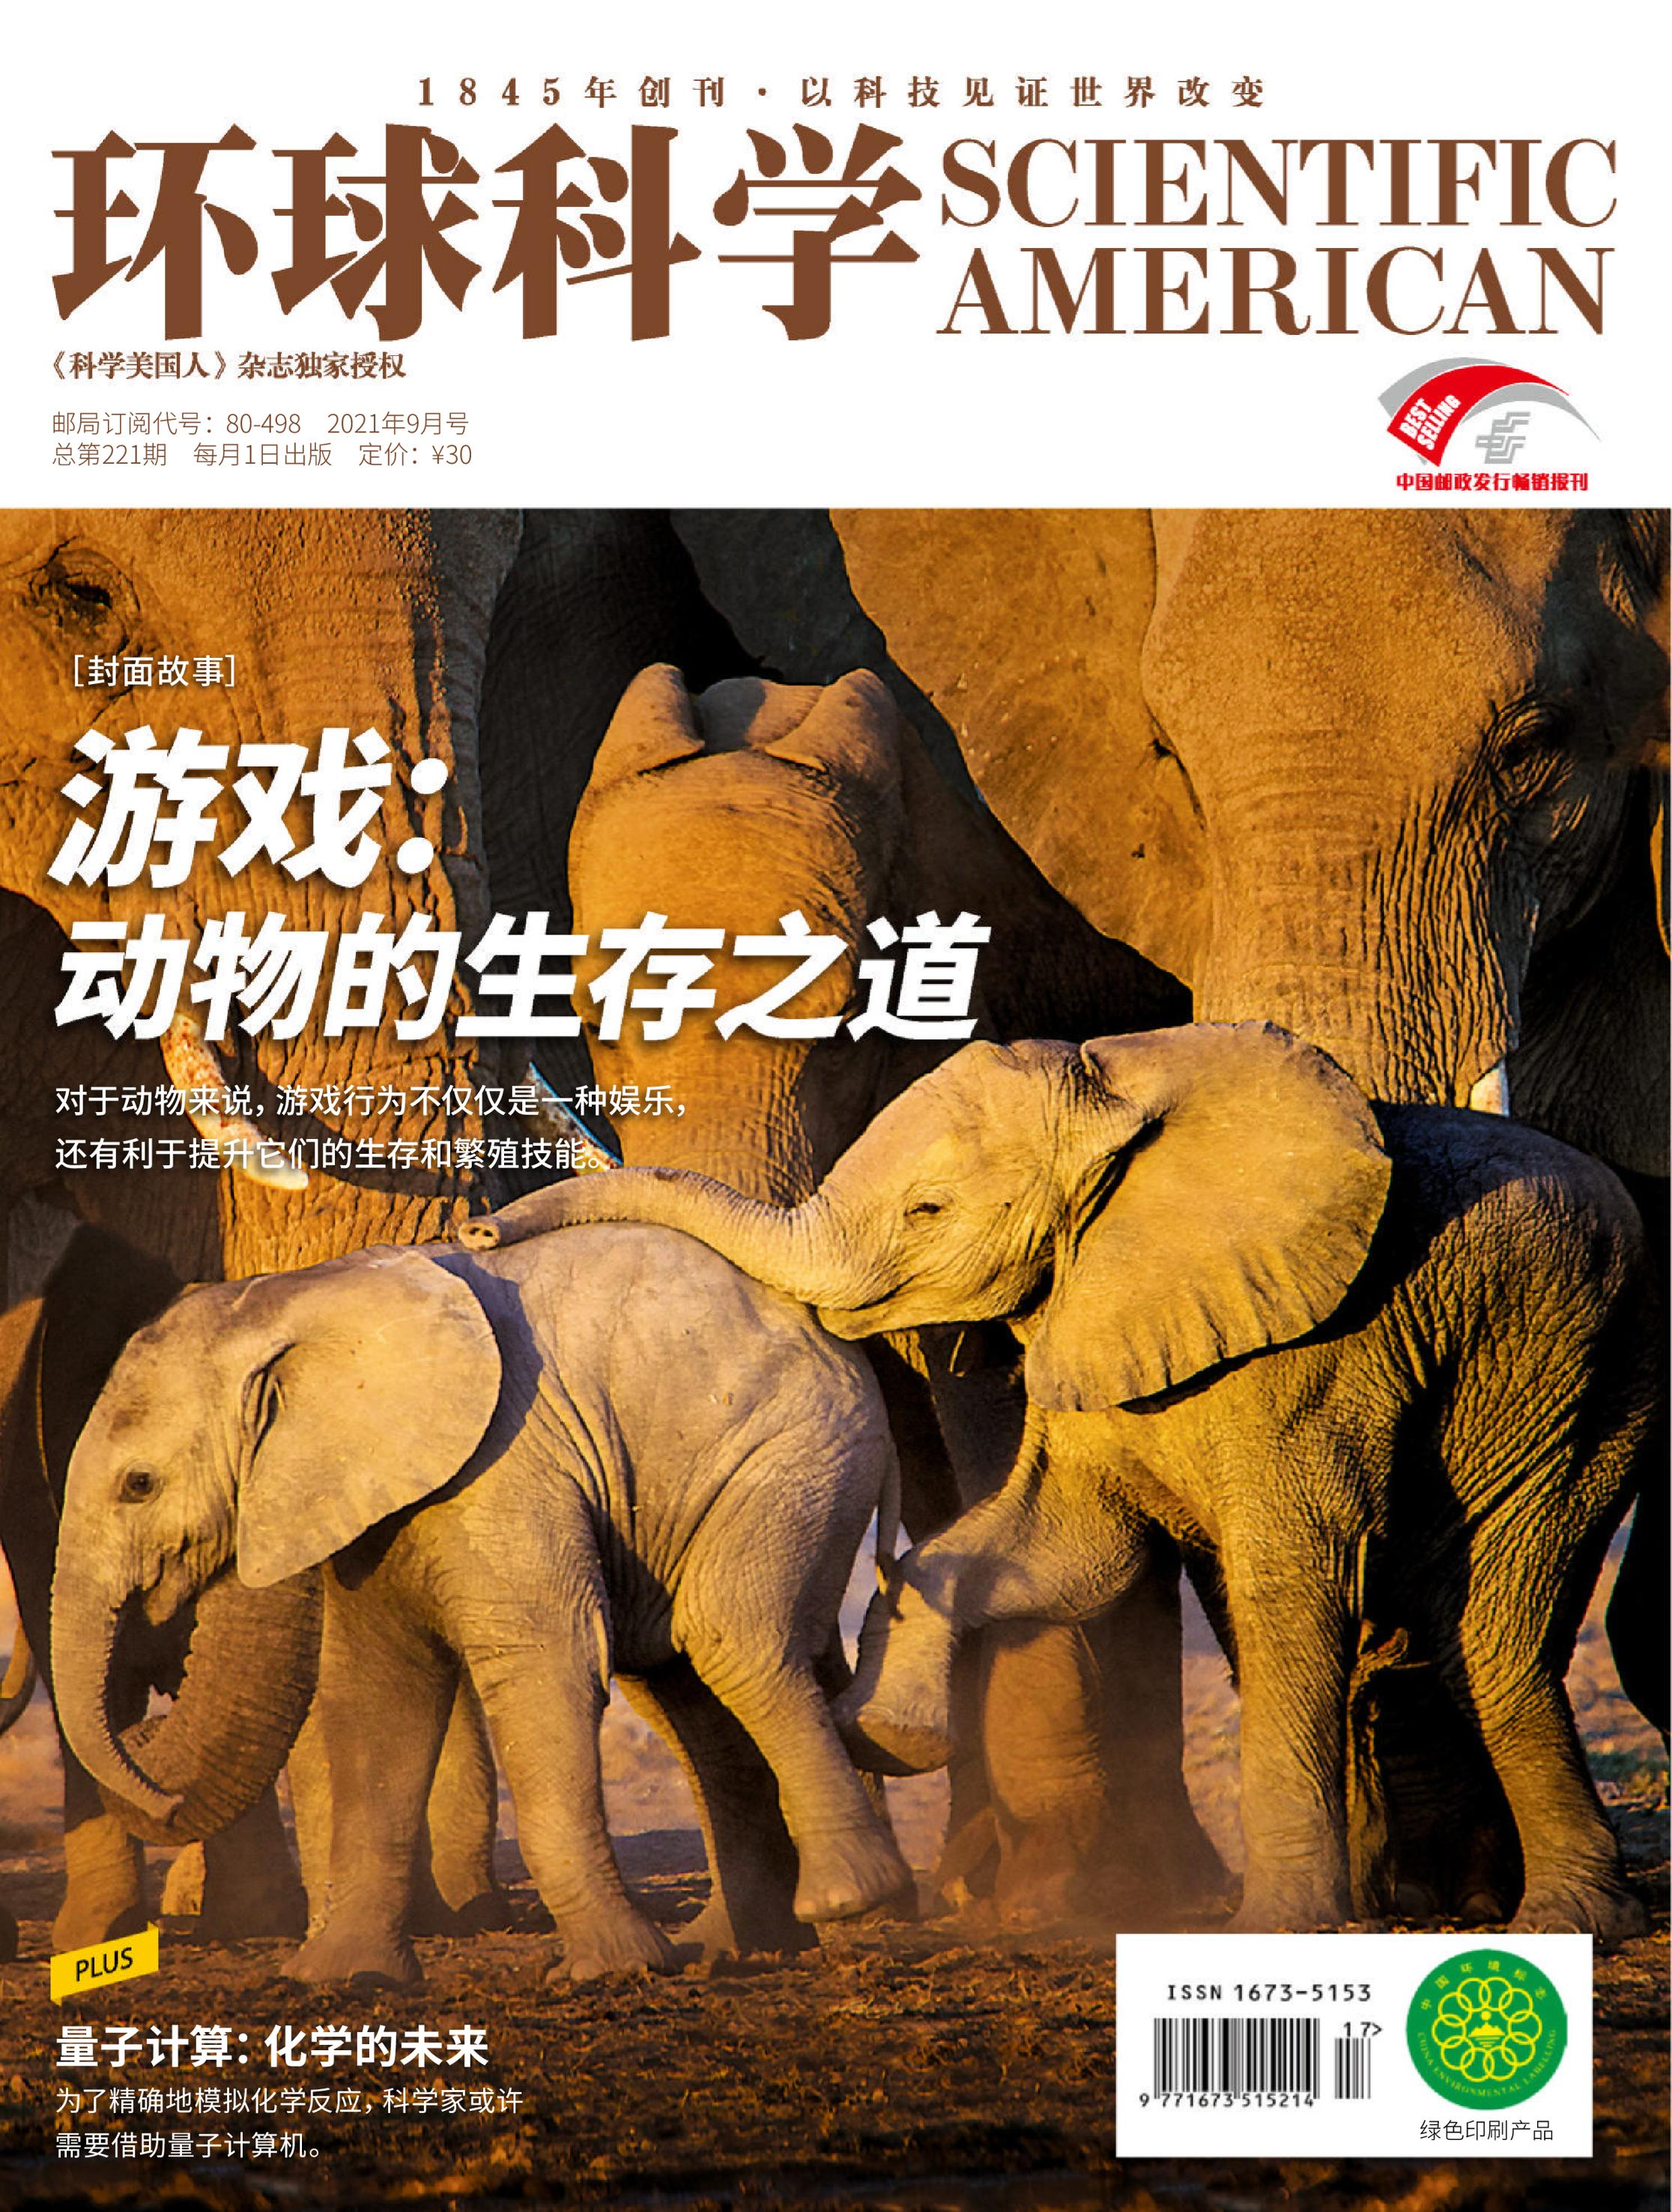 Scientific American Chinese Edition - 九月 2021